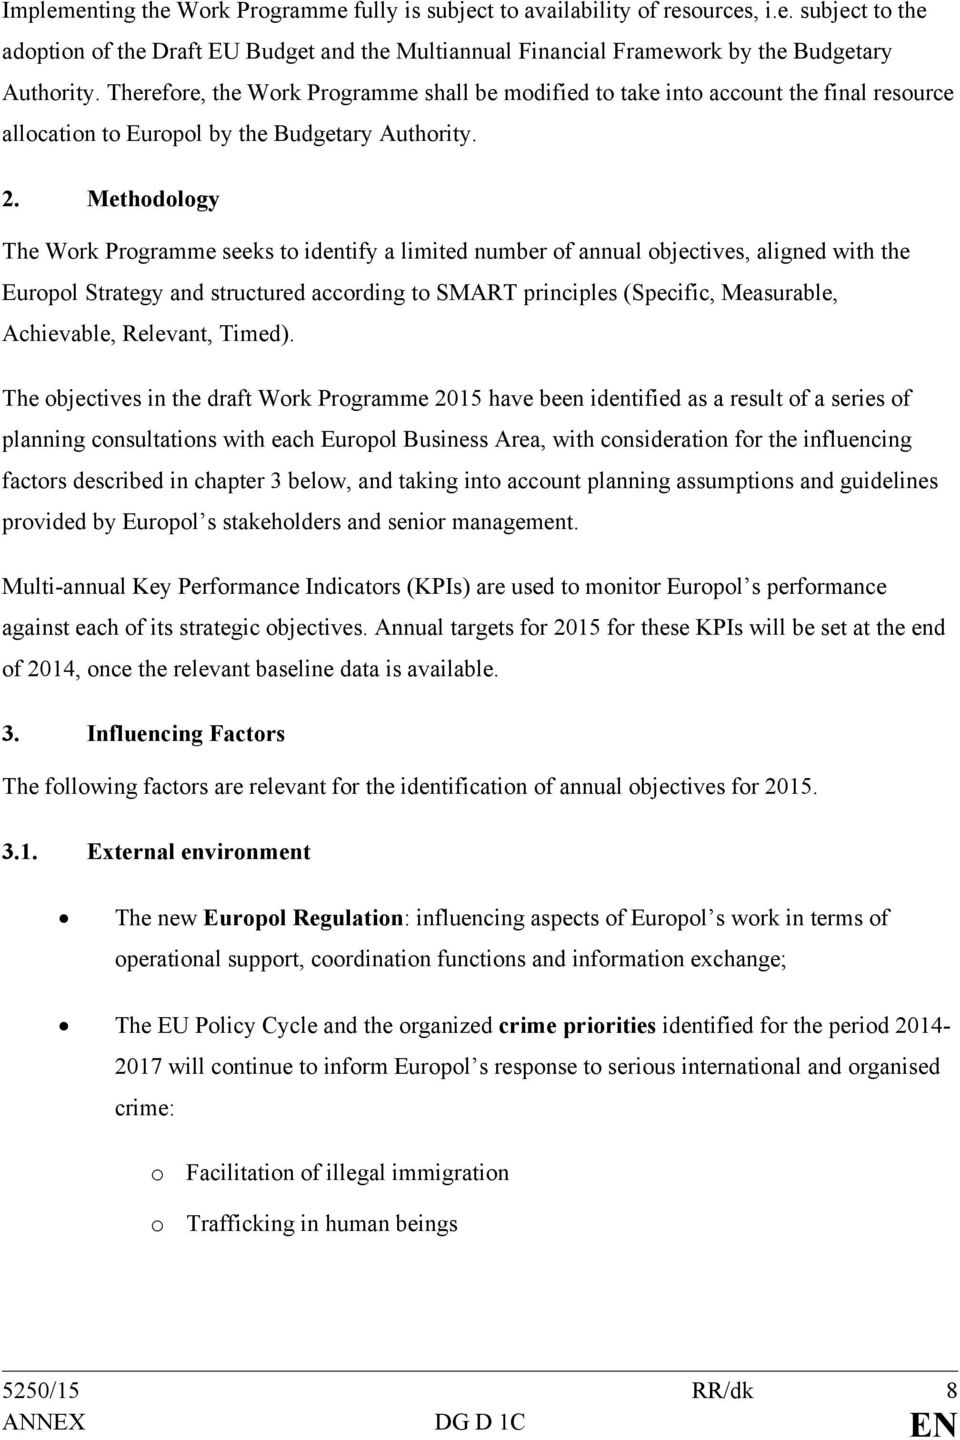 Methodology The Work Programme seeks to identify a limited number of annual objectives, aligned with the Europol Strategy and structured according to SMART principles (Specific, Measurable,